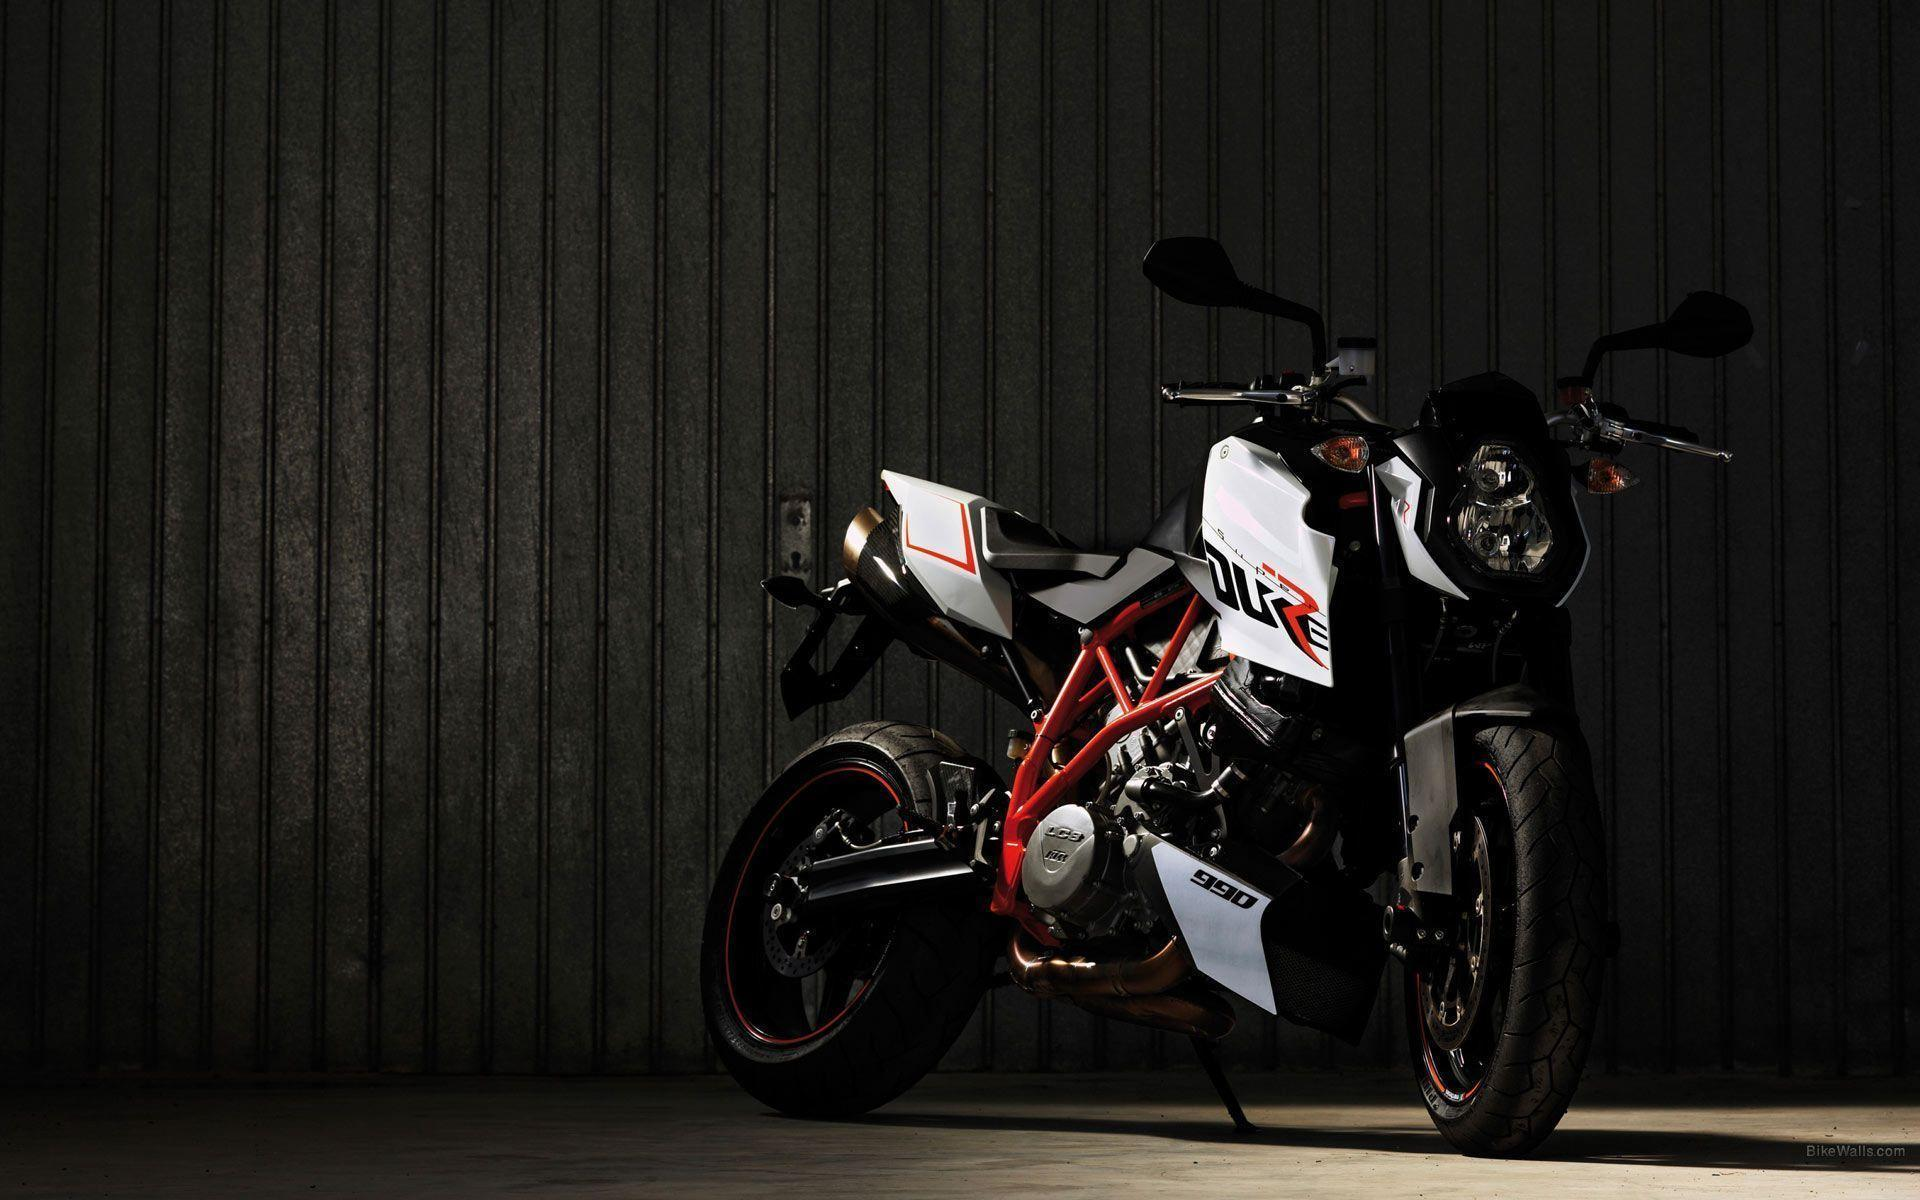 Ktm 500 Exc Supermoto Wallpapers Wallpapers